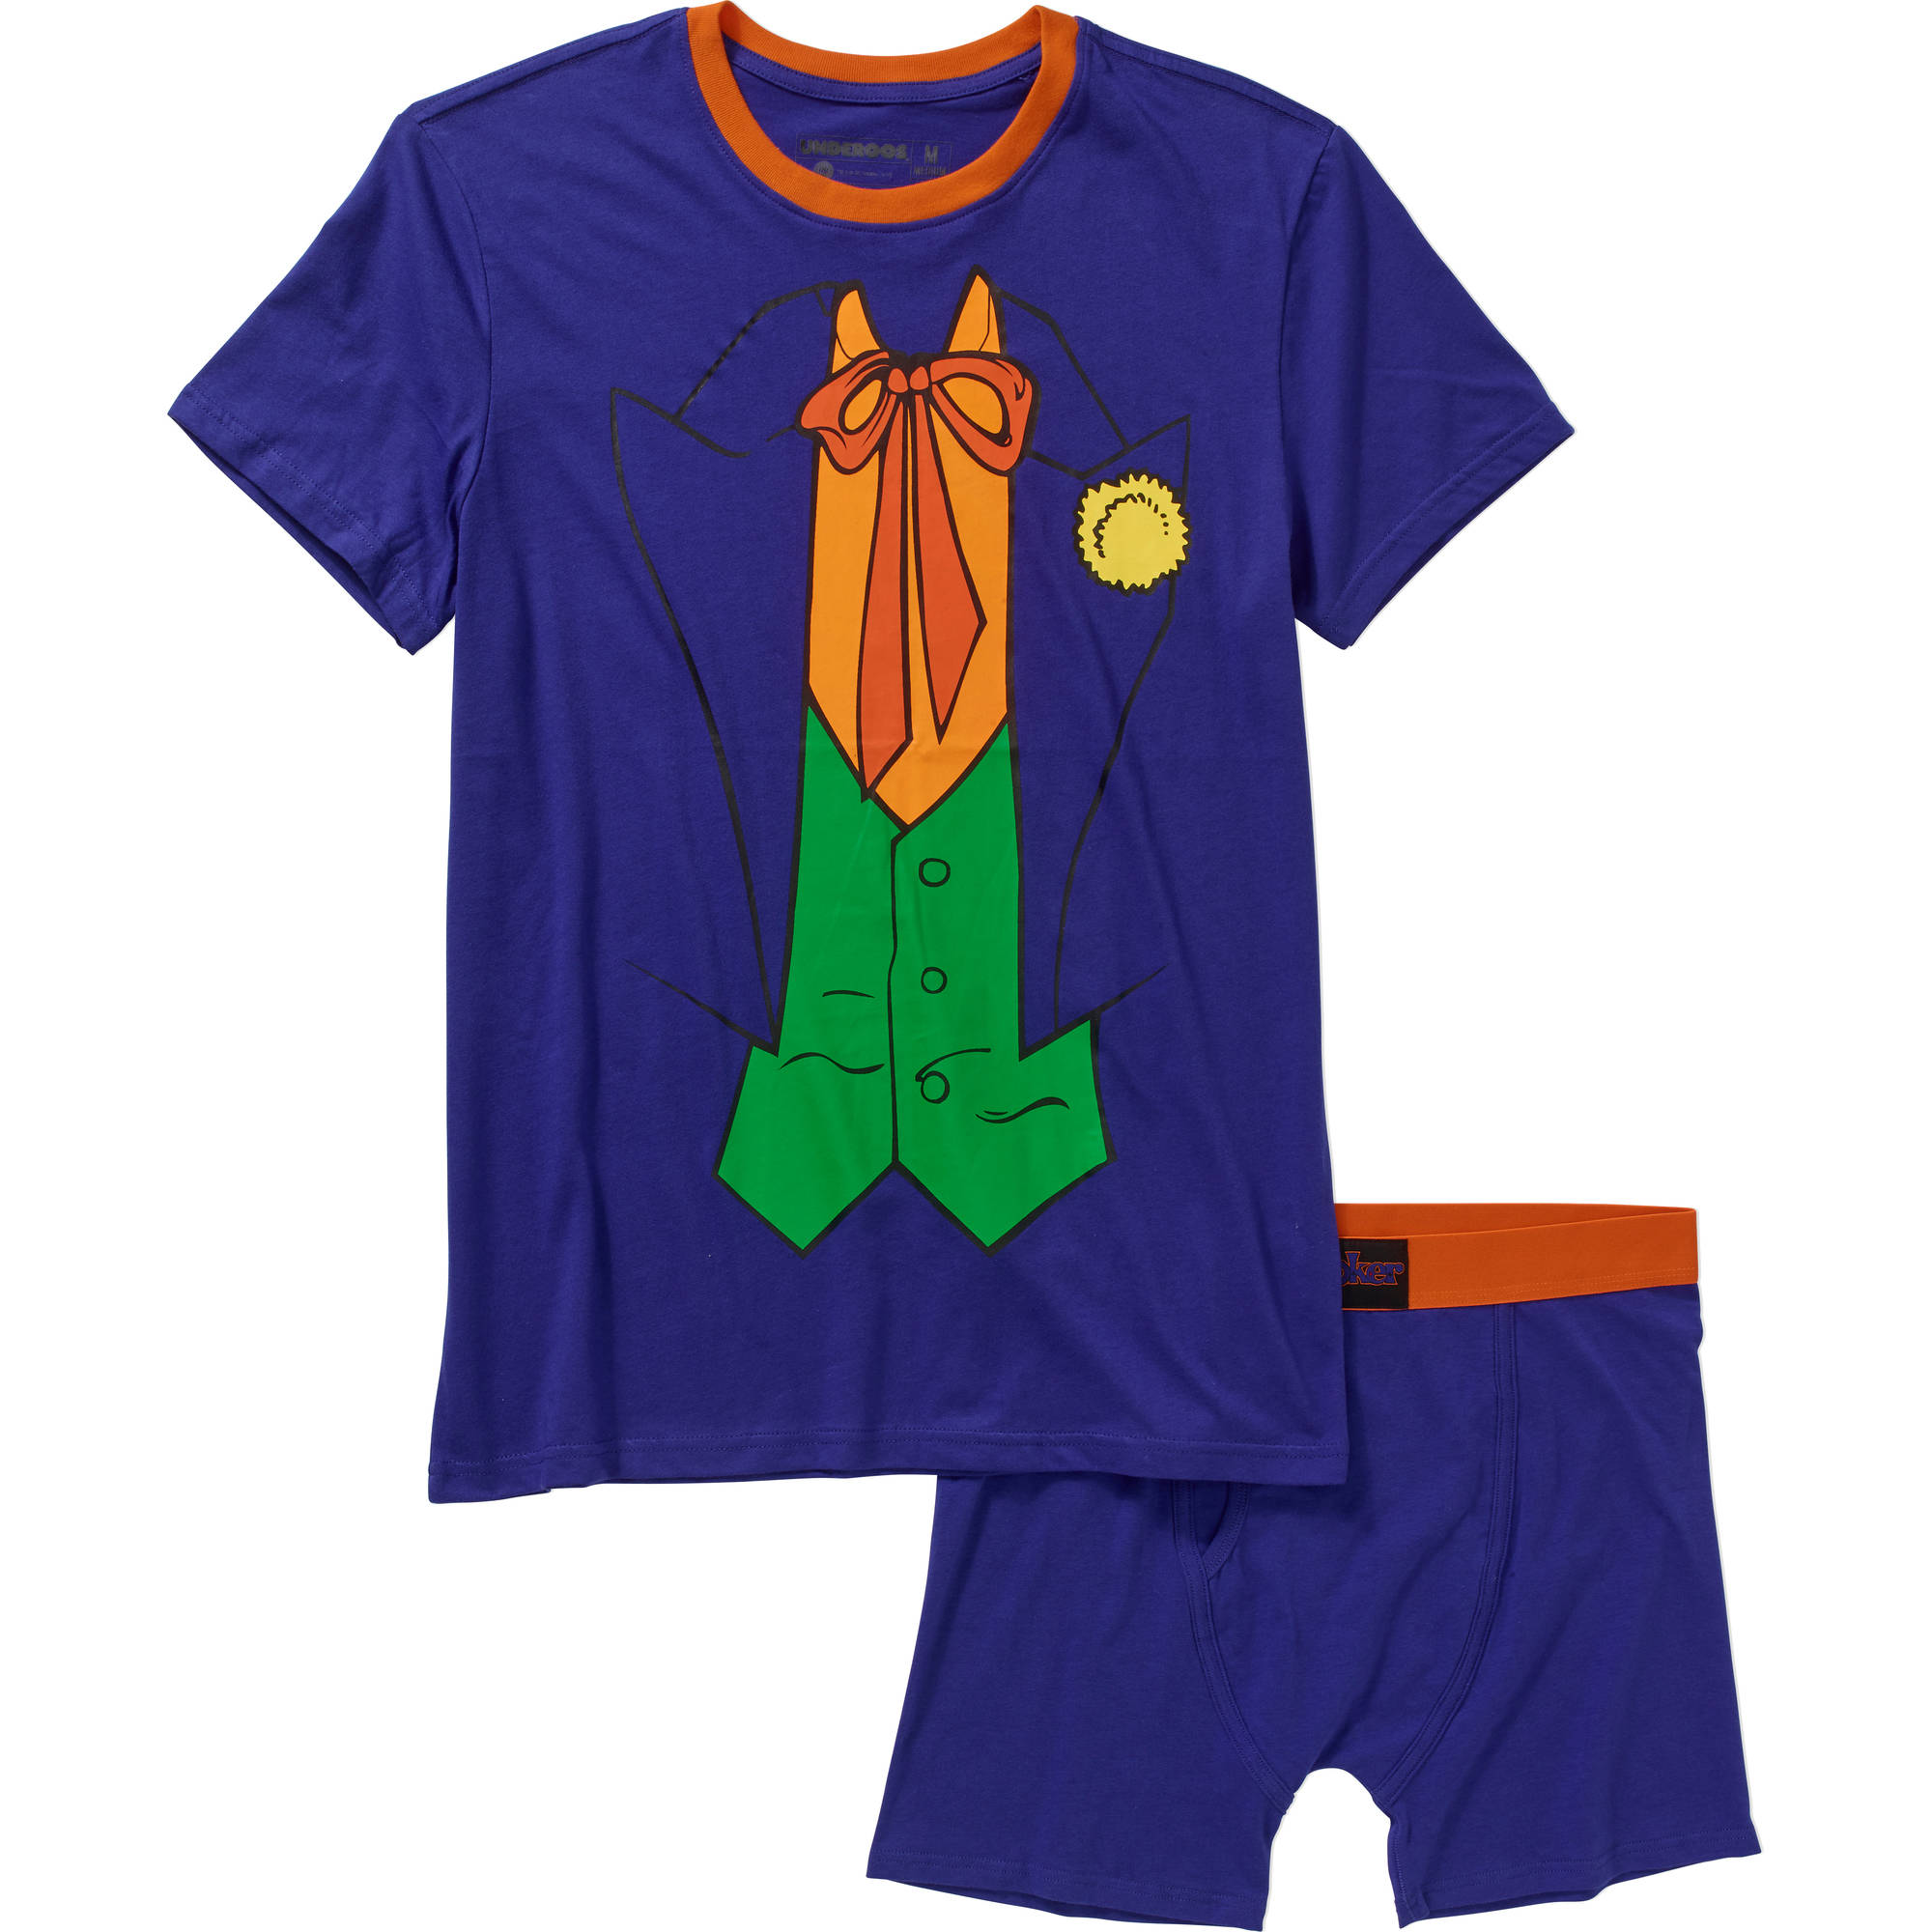 Joker Men's Underoos Underwear Set